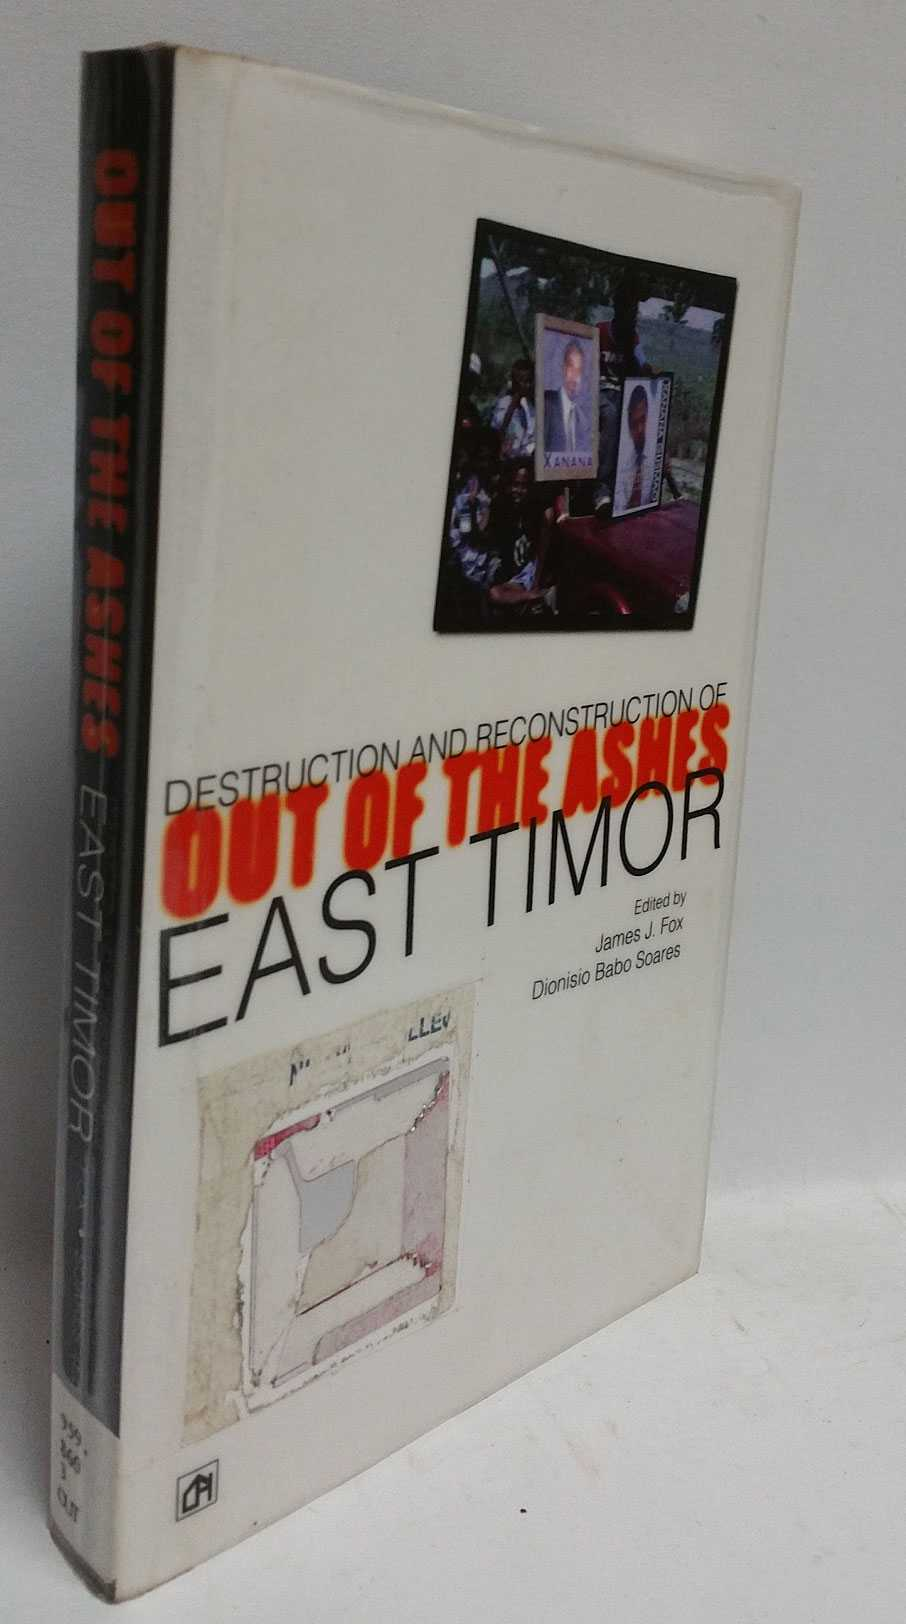 Out of the Ashes: Destruction and Reconstruction of East Timor, James J. Fox; Bionisio Babo Soares